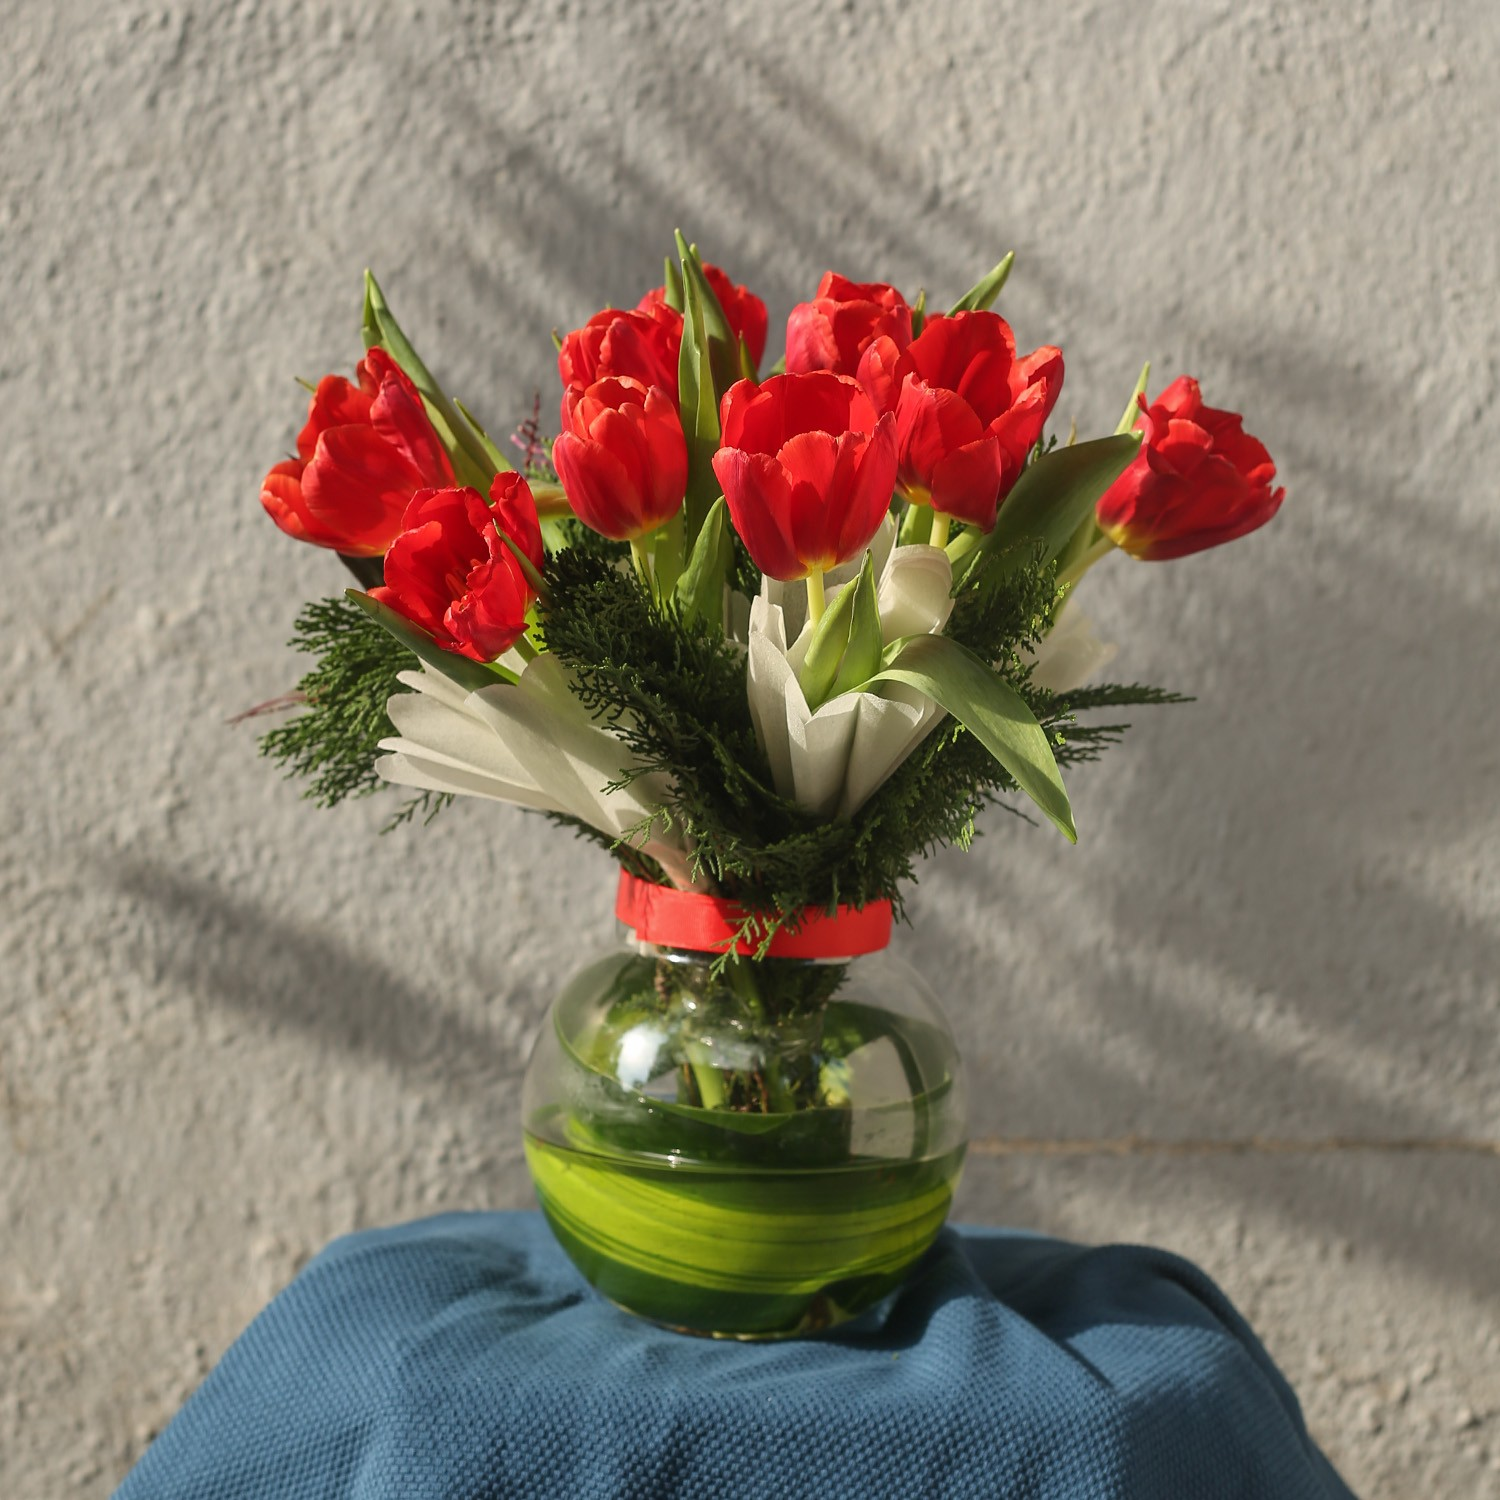 tulips-bouquet